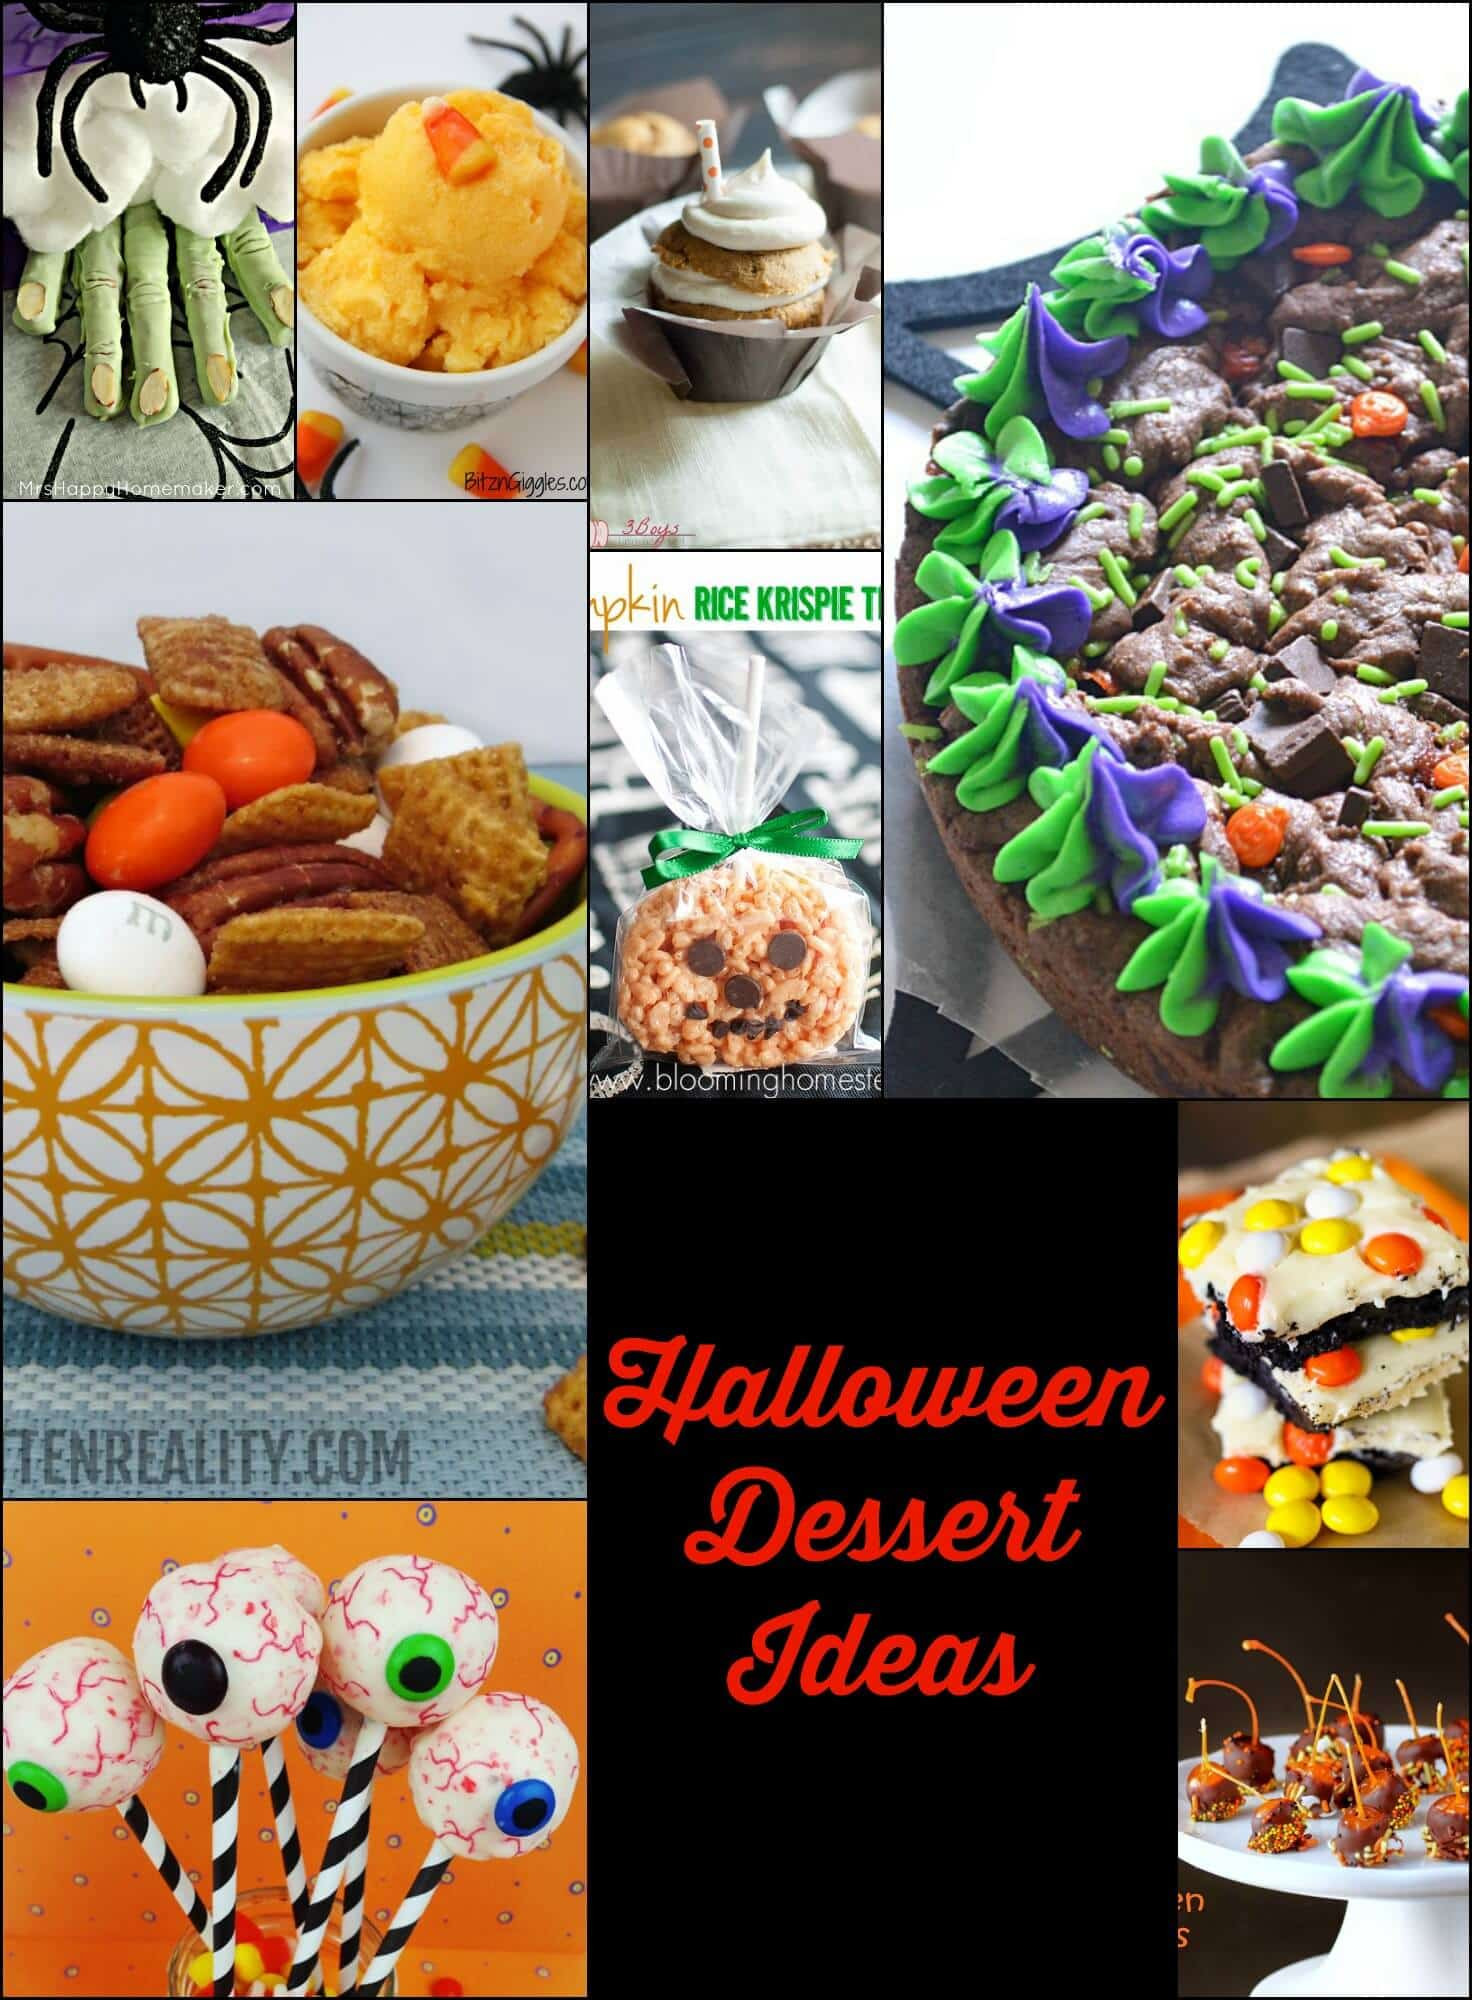 Halloween Desserts Ideas  Frightfully Fun Halloween Desserts Page 2 of 2